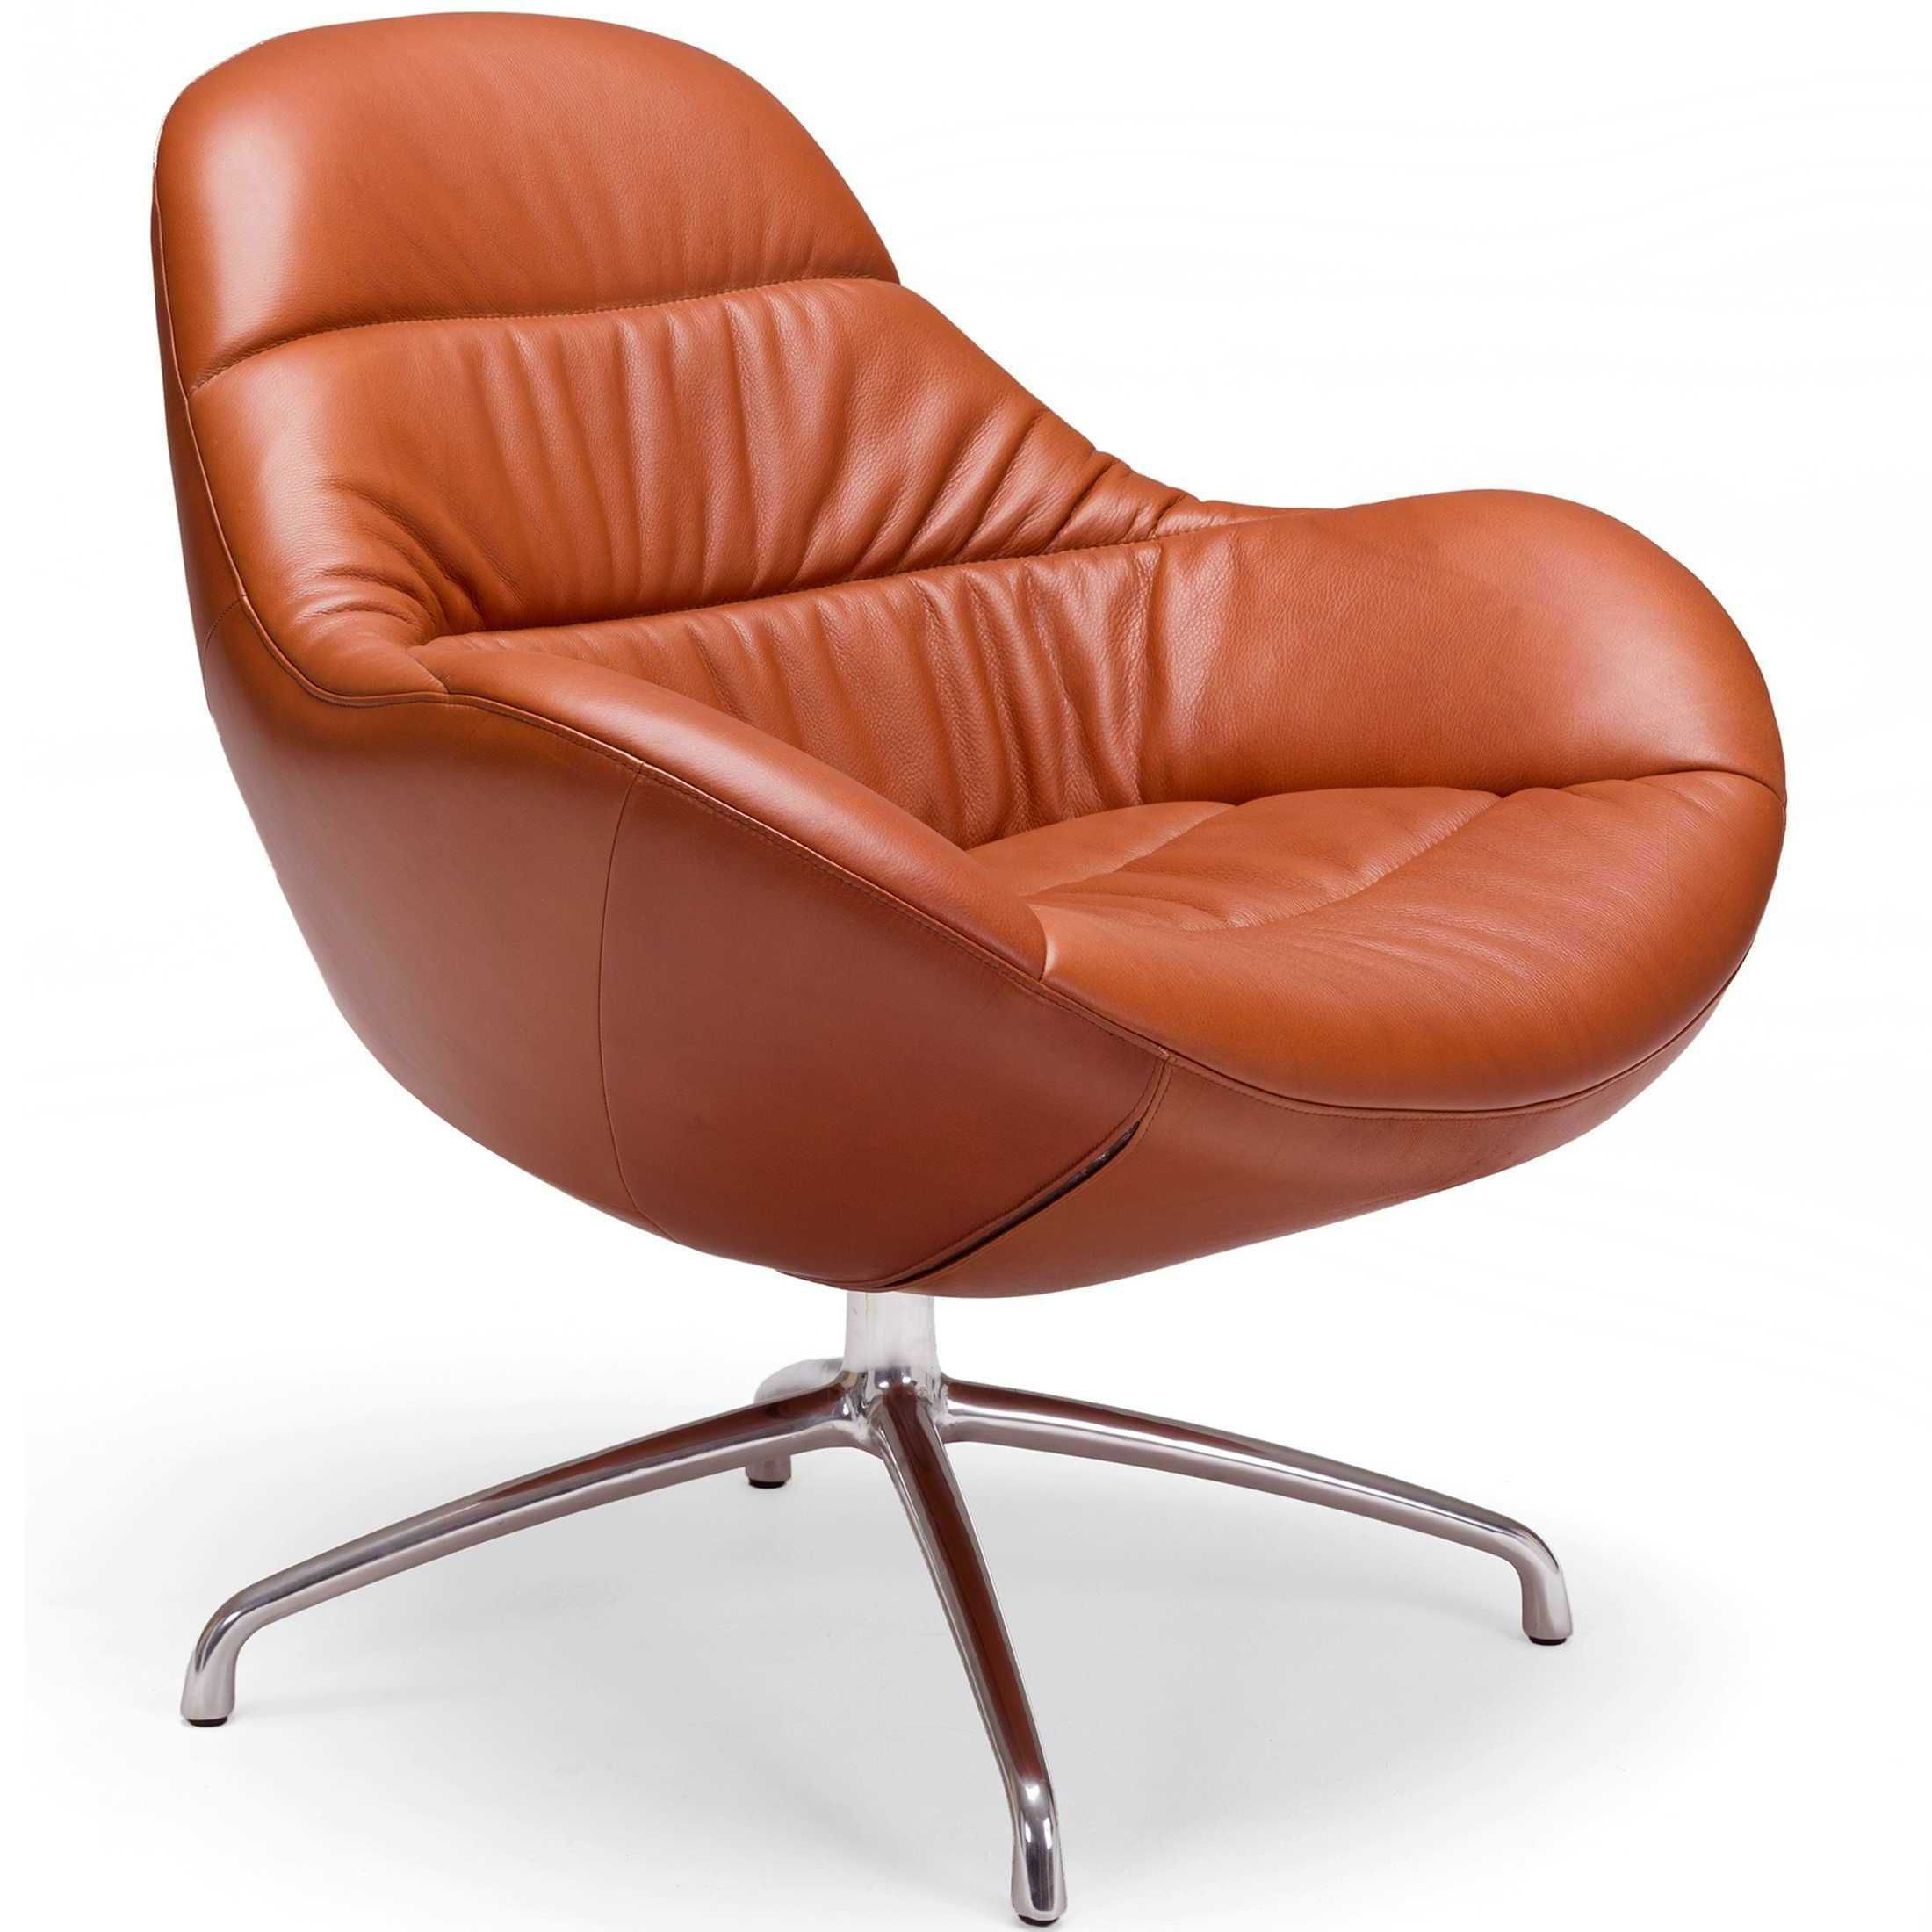 Design On Stock Bloq Fauteuil.Design On Stock Nylo Fauteuil